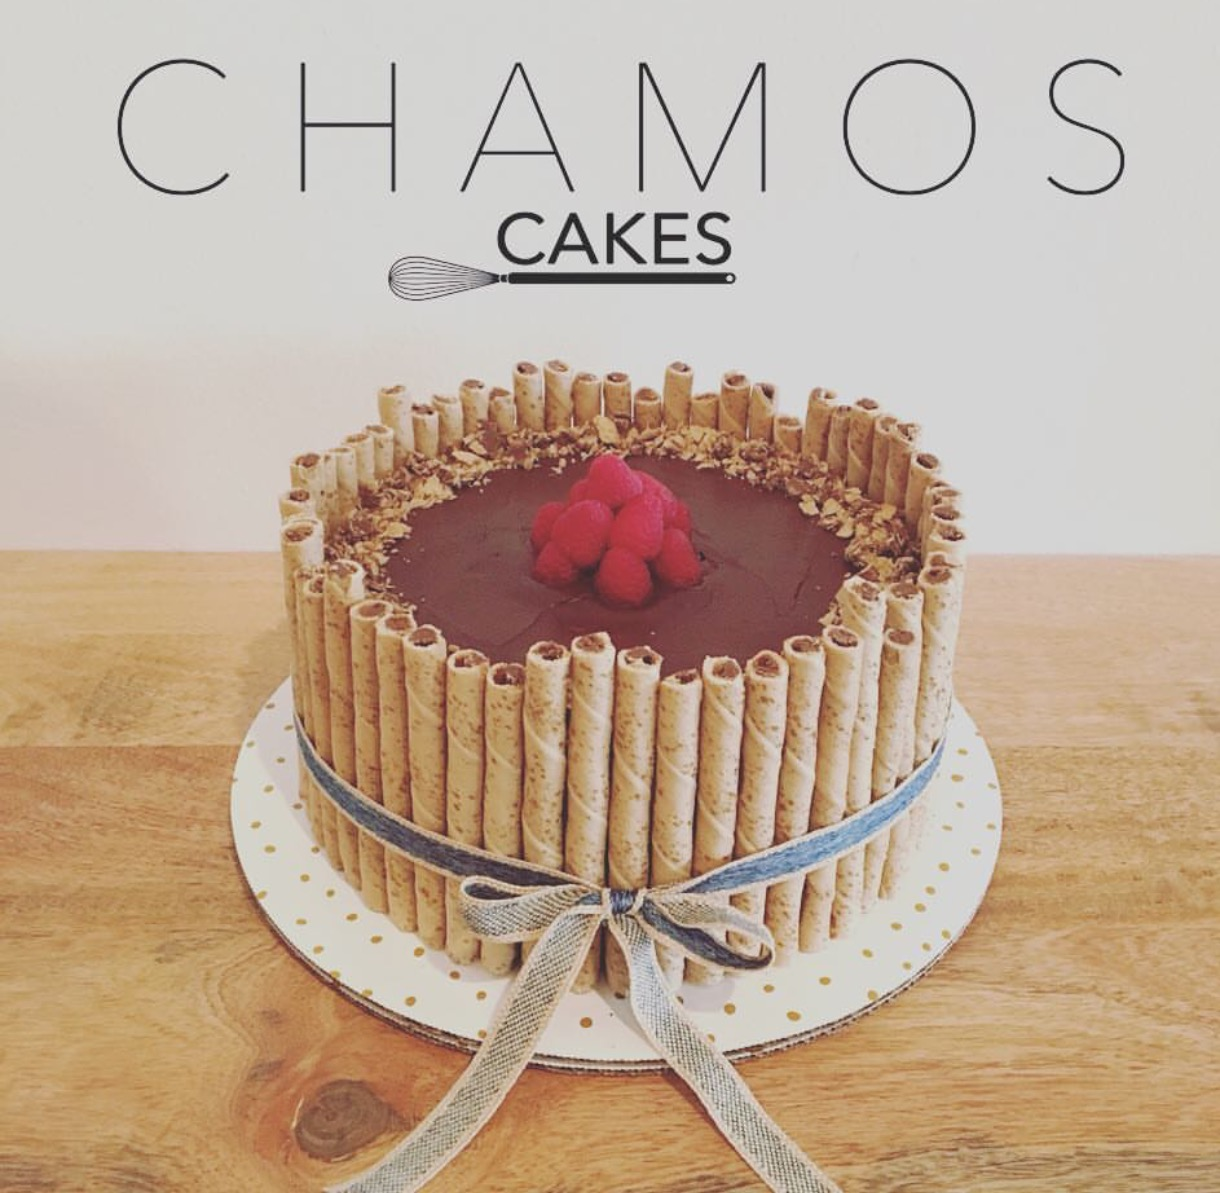 give them a follow on instagram @chamoscakes